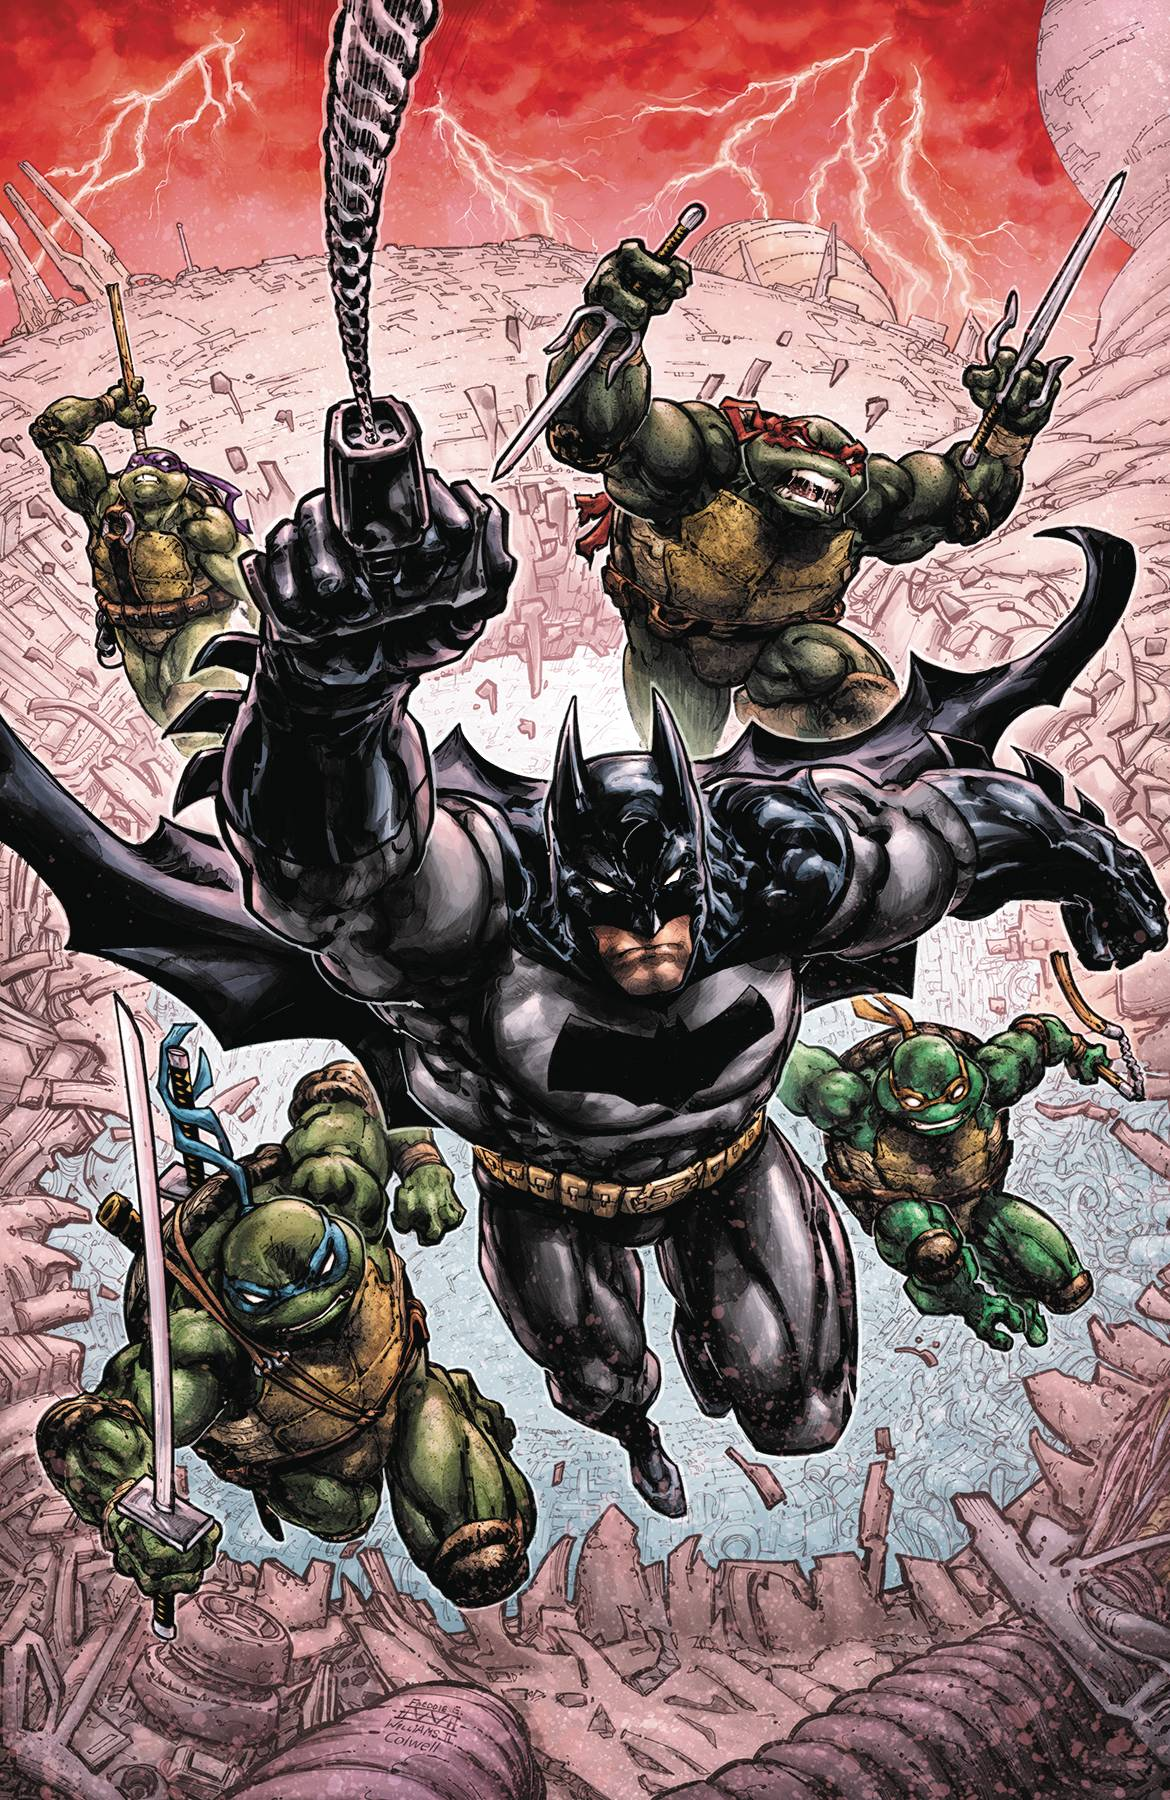 BATMAN TEENAGE MUTANT NINJA TURTLES III #1